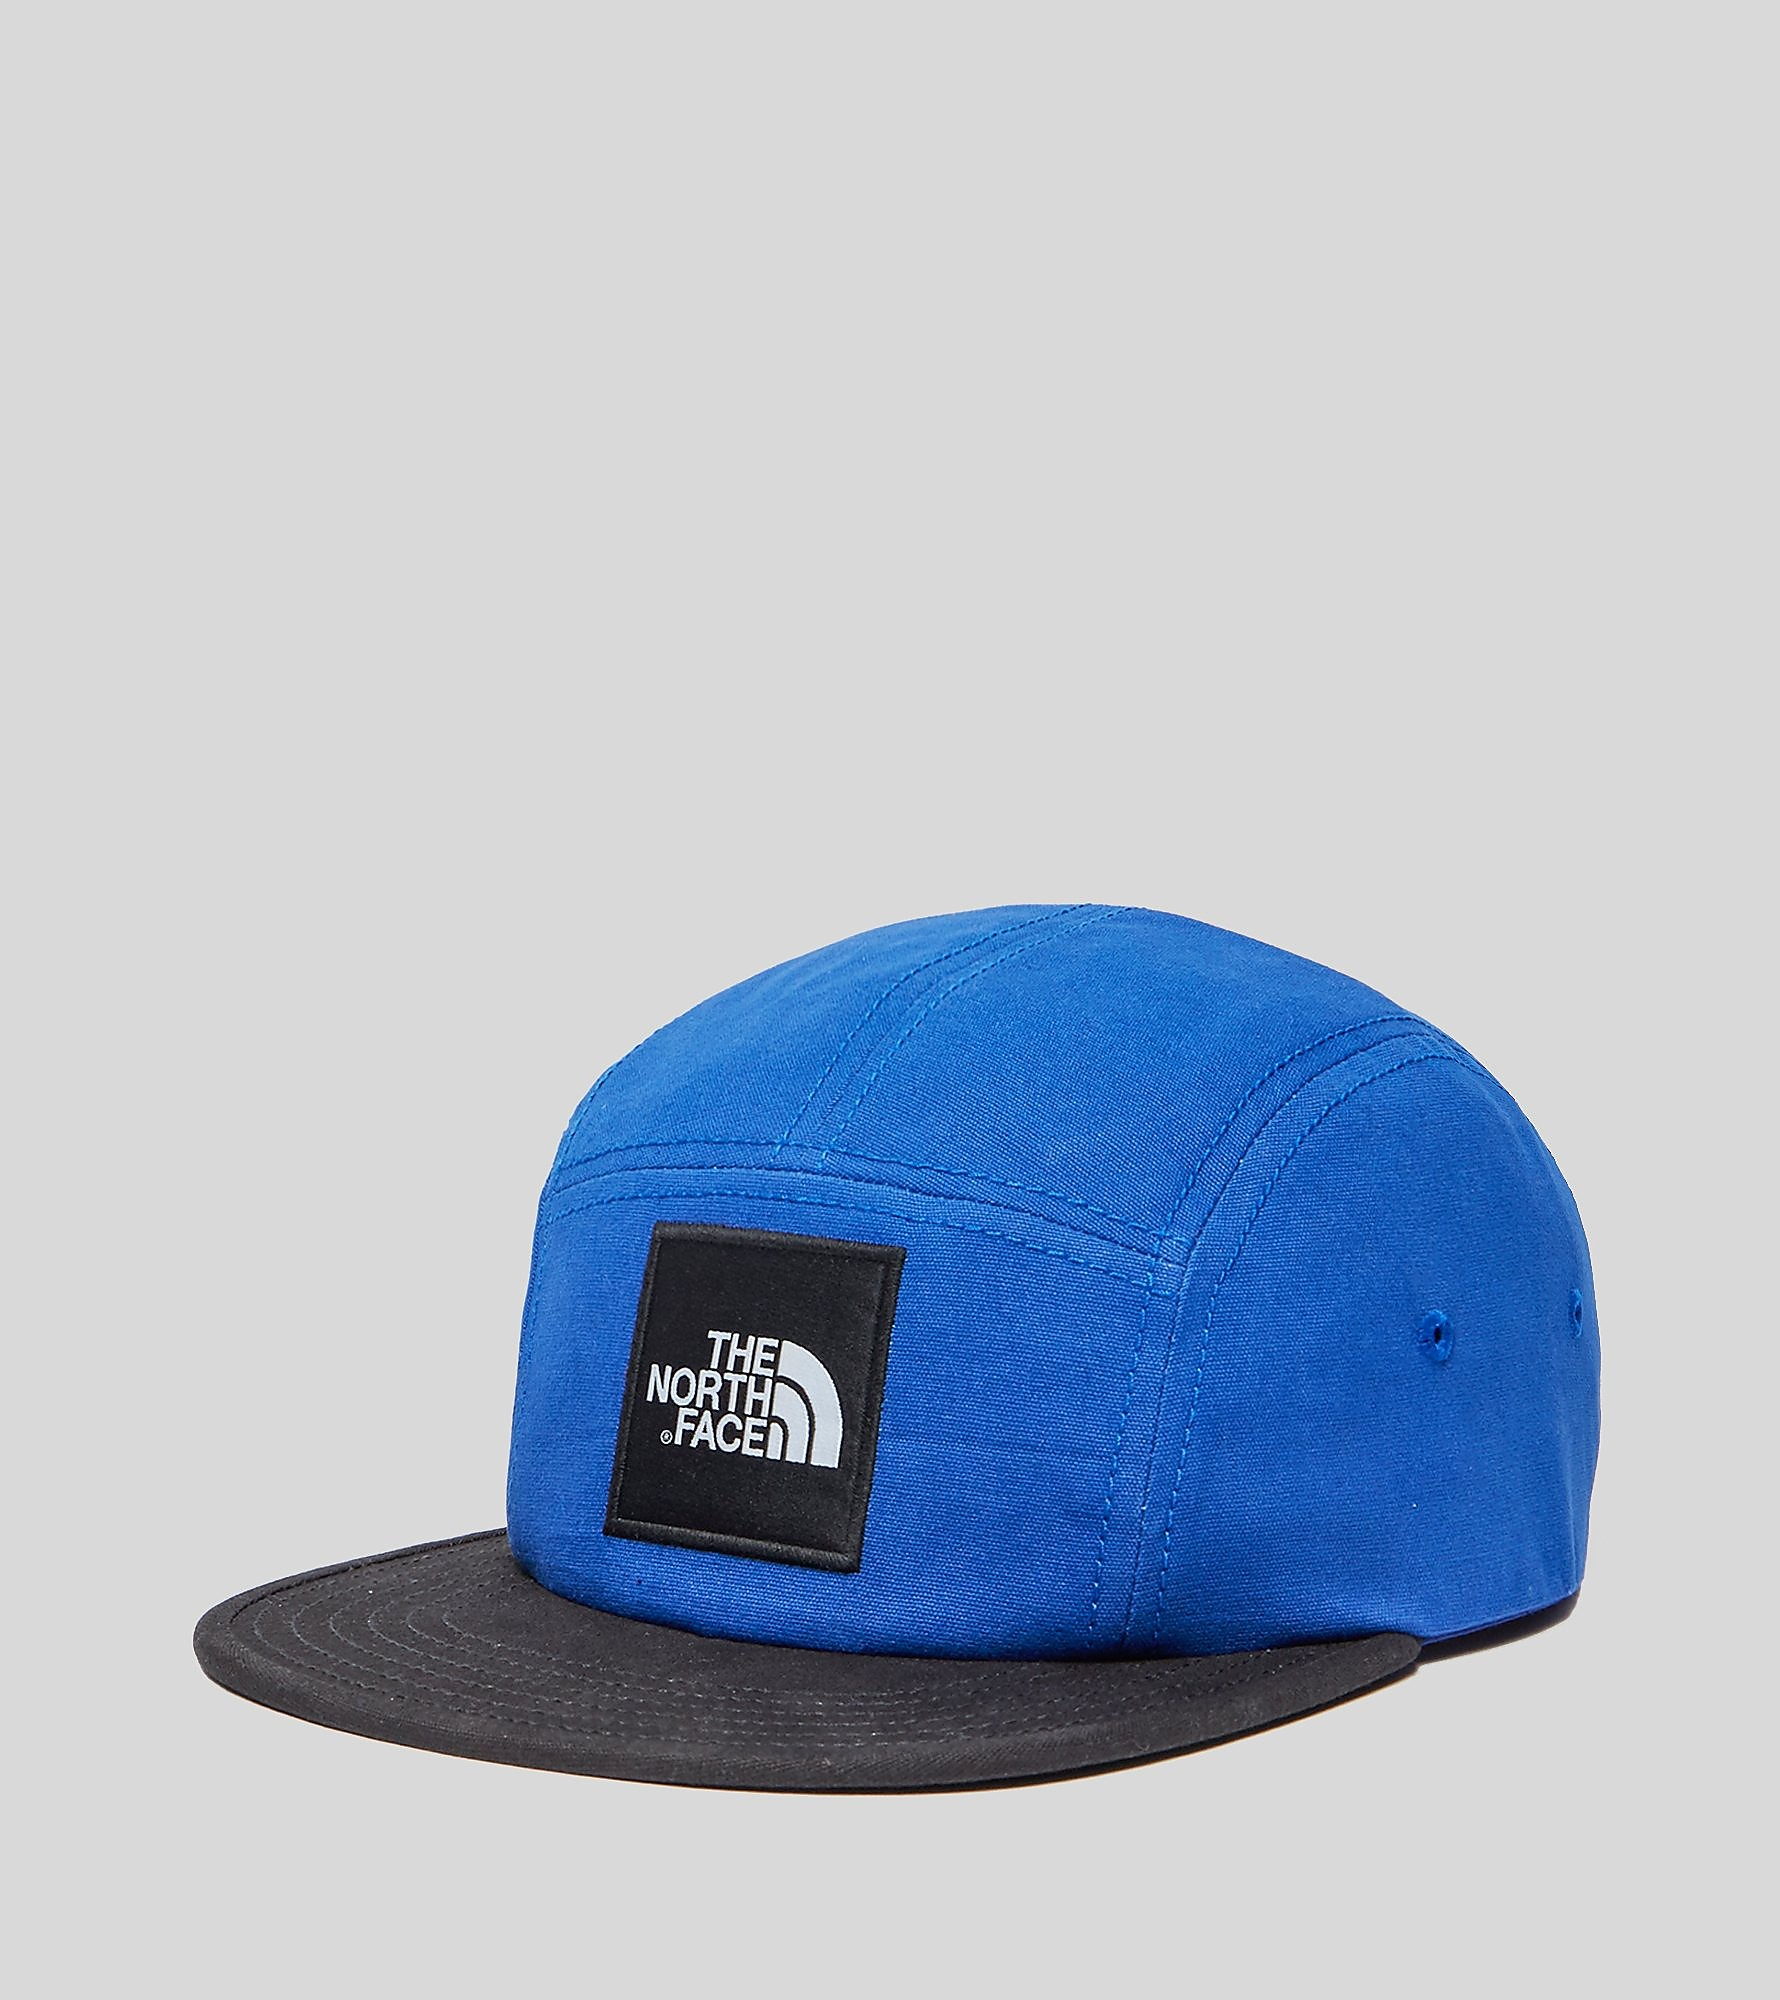 The North Face Black Label 5 Panel